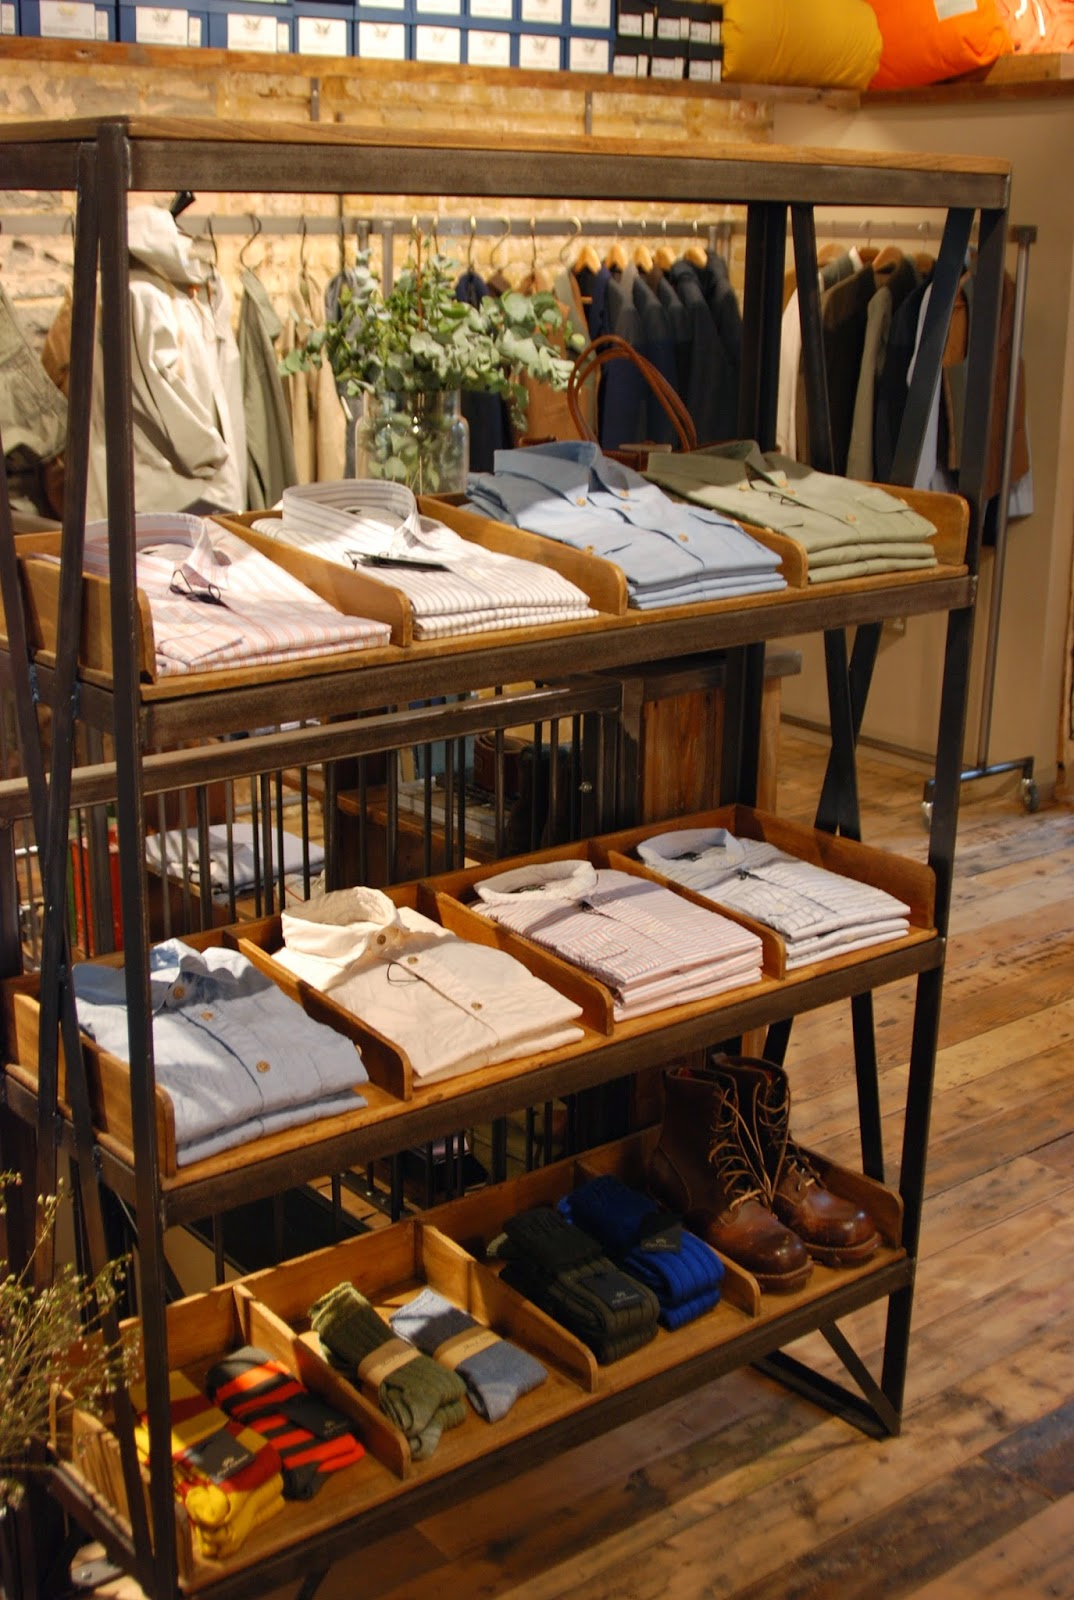 c2955c9f48c784 Just across the street from The Real Mccoy s you ll find Nigel Cabourn s  The Army Gym.